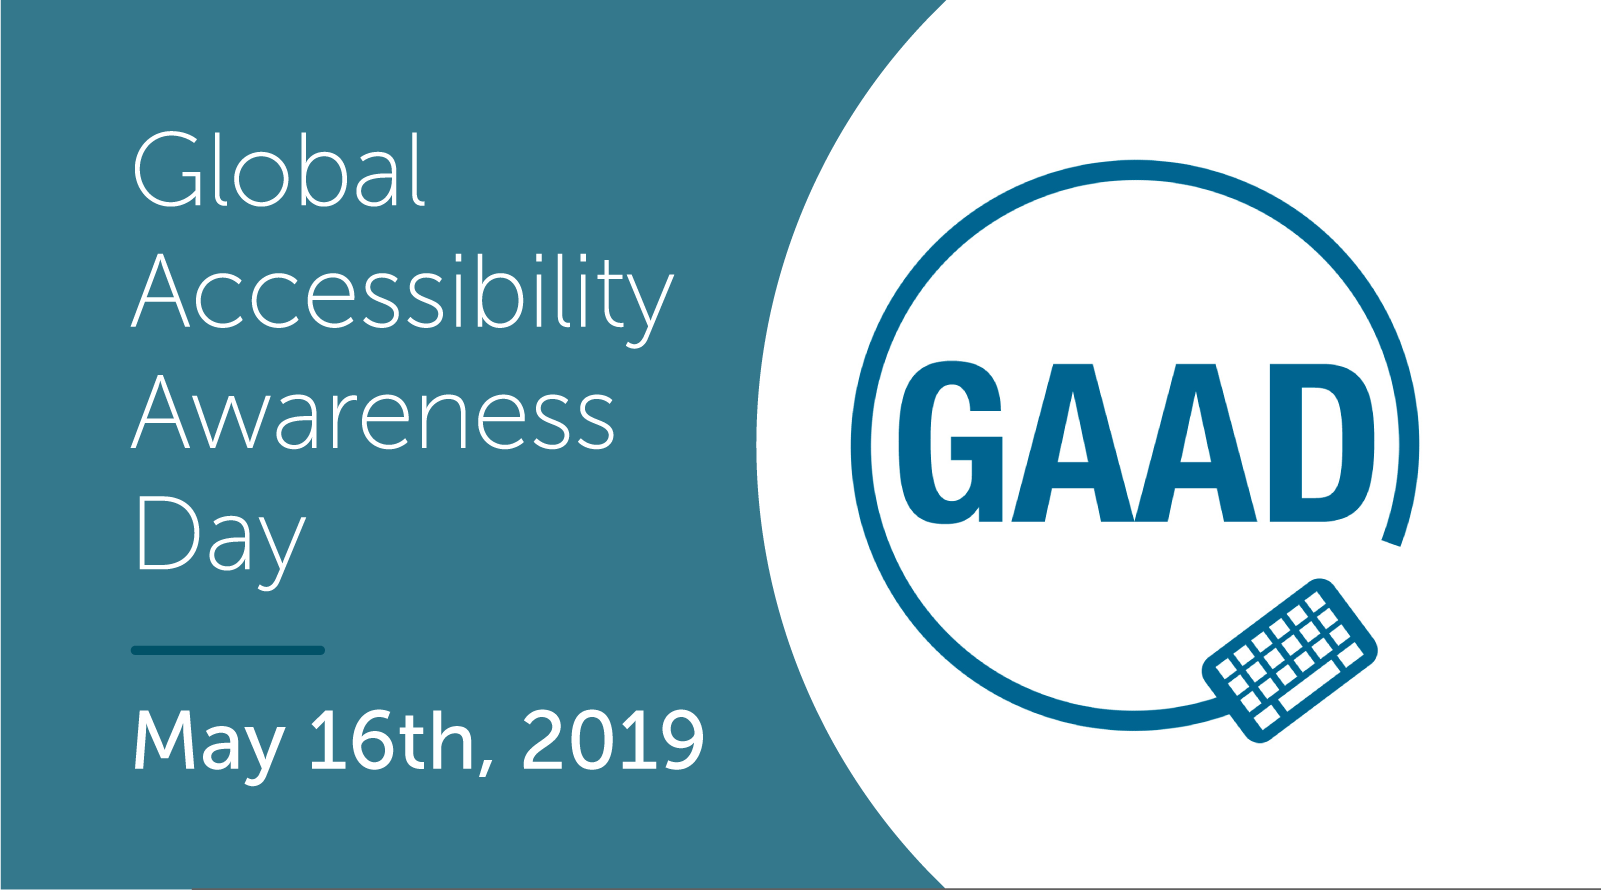 Global Accessibility Awareness Day (GAAD) - May 16, 2019